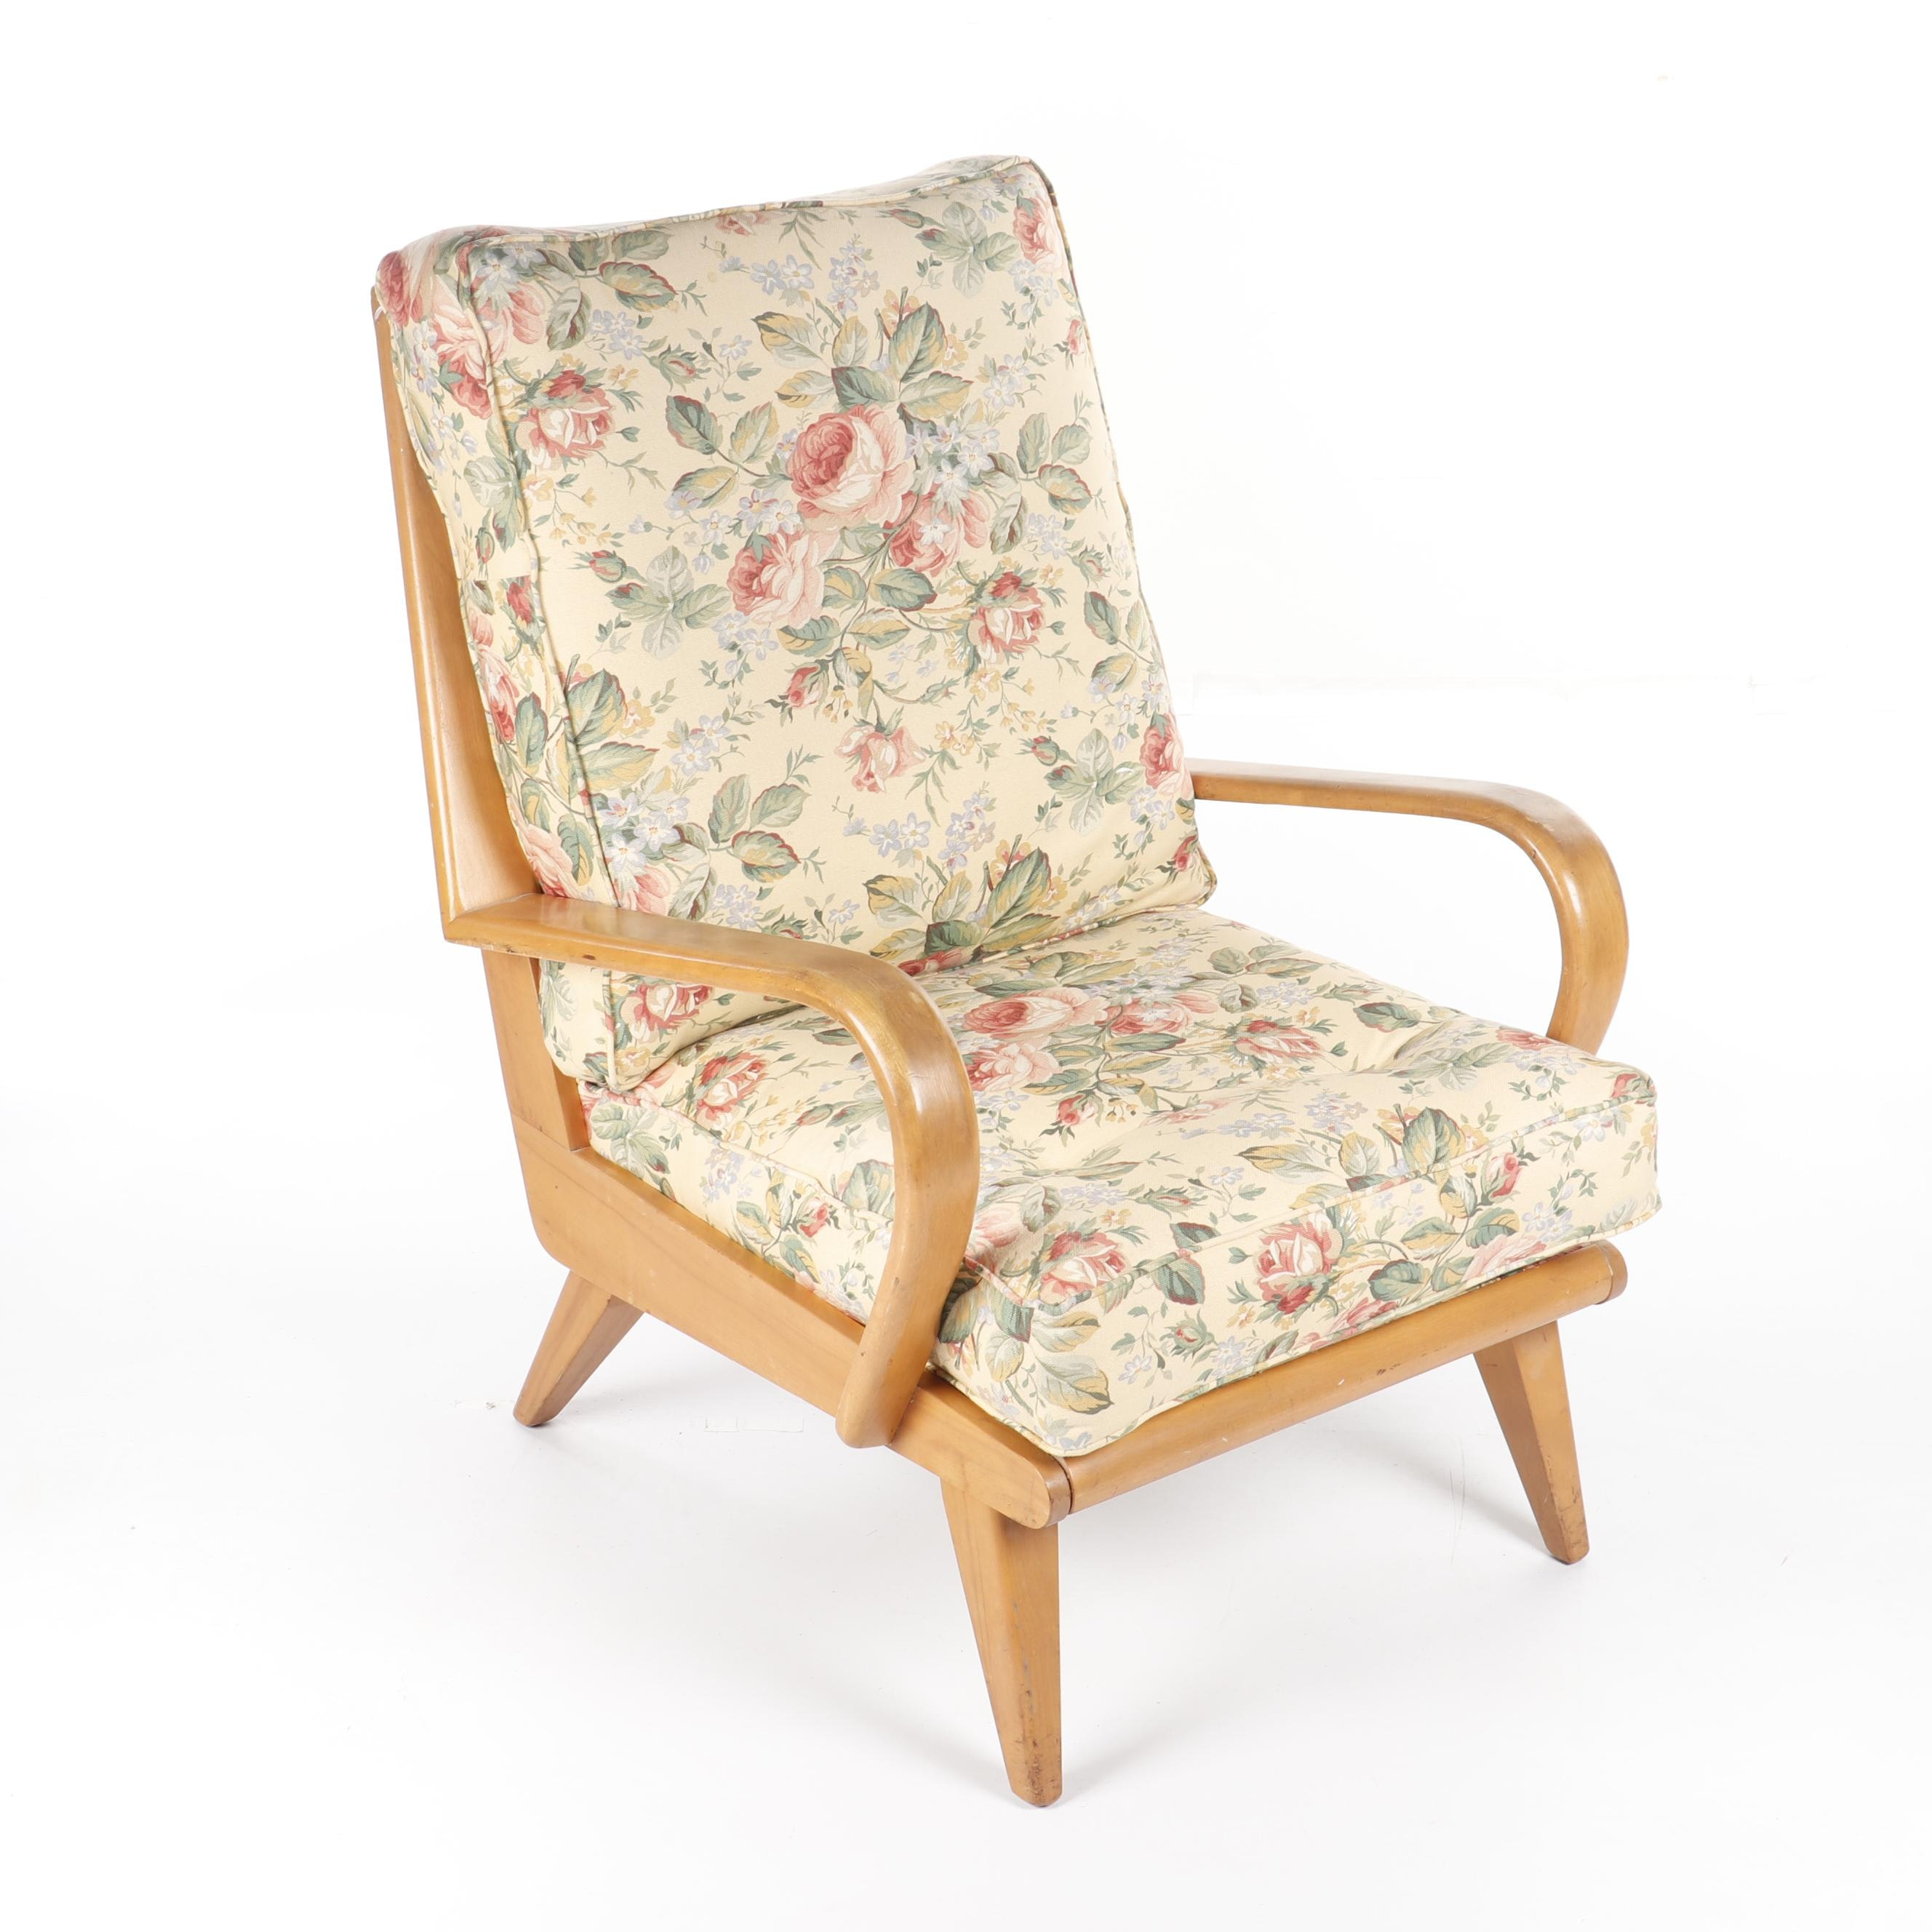 """Aristocraft"" Bent Maple Armchair by Heywood-Wakefield, Circa 1950s"